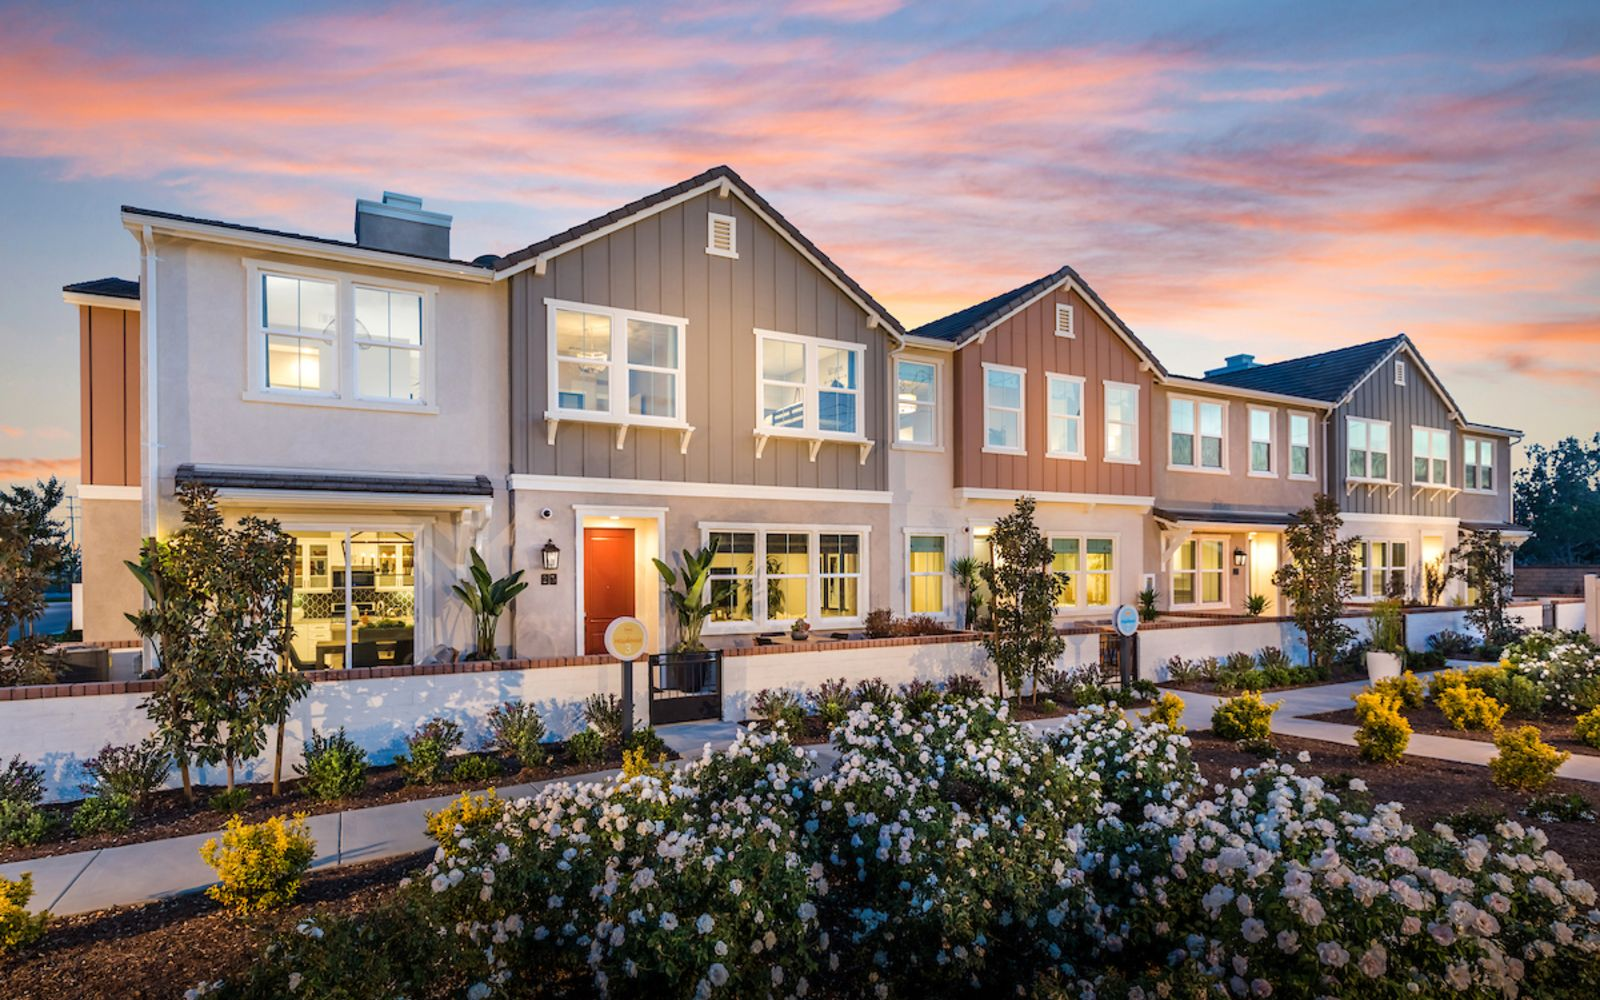 Townhomes in Ontario Ranch, CA | Solstice Emerald Park at ... on california style house design, california spanish ranch house plans, california craftsman home plans, california ranch house design, rustic ranch house plans, ranch house floor plans, award-winning small home plans, cowboy ranch house plans, california basement house plans, 1950's house plans, 1970s herman york house plans, small ranch house plans, unique ranch house plans, affordable 4 bedroom house plans, sprawling ranch house plans, stone ranch house plans, california colonial house plans, classic california ranch house plans, southern house plans, california cottage house plans,